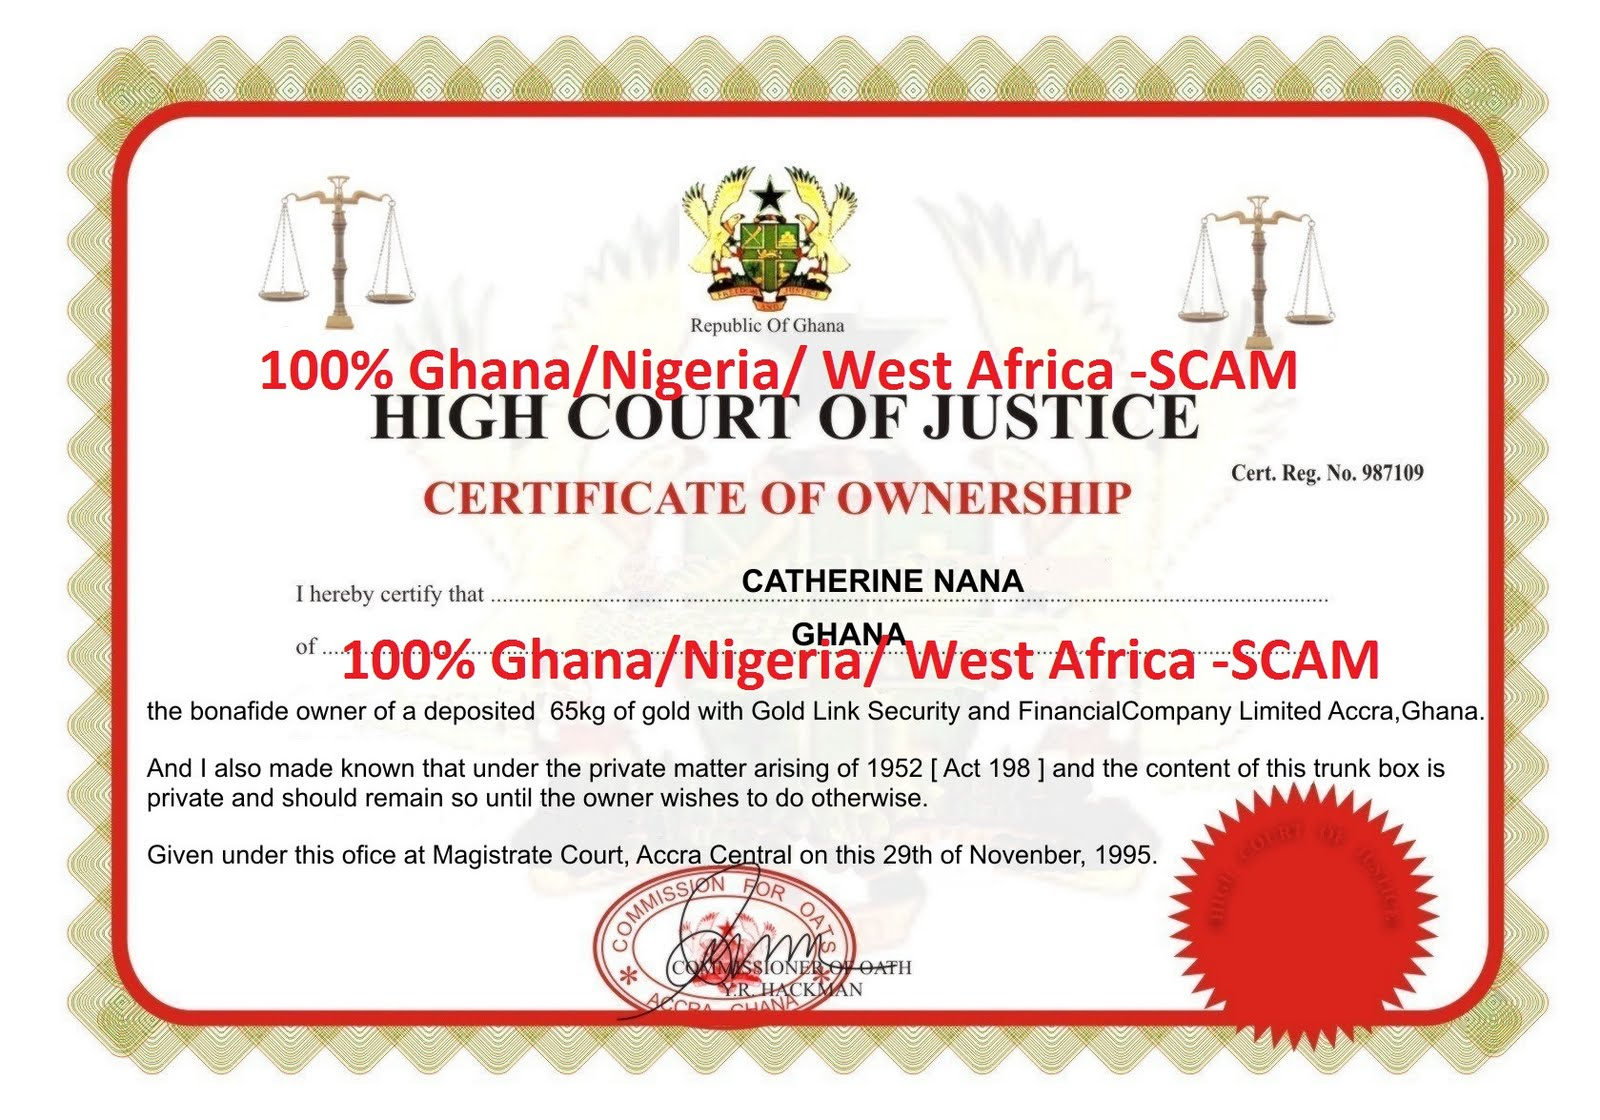 Accra Ghana Scammers http://ghanadatingscam.blogspot.com/2011/08/dating-gold-scam-is-not-game-for-you.html